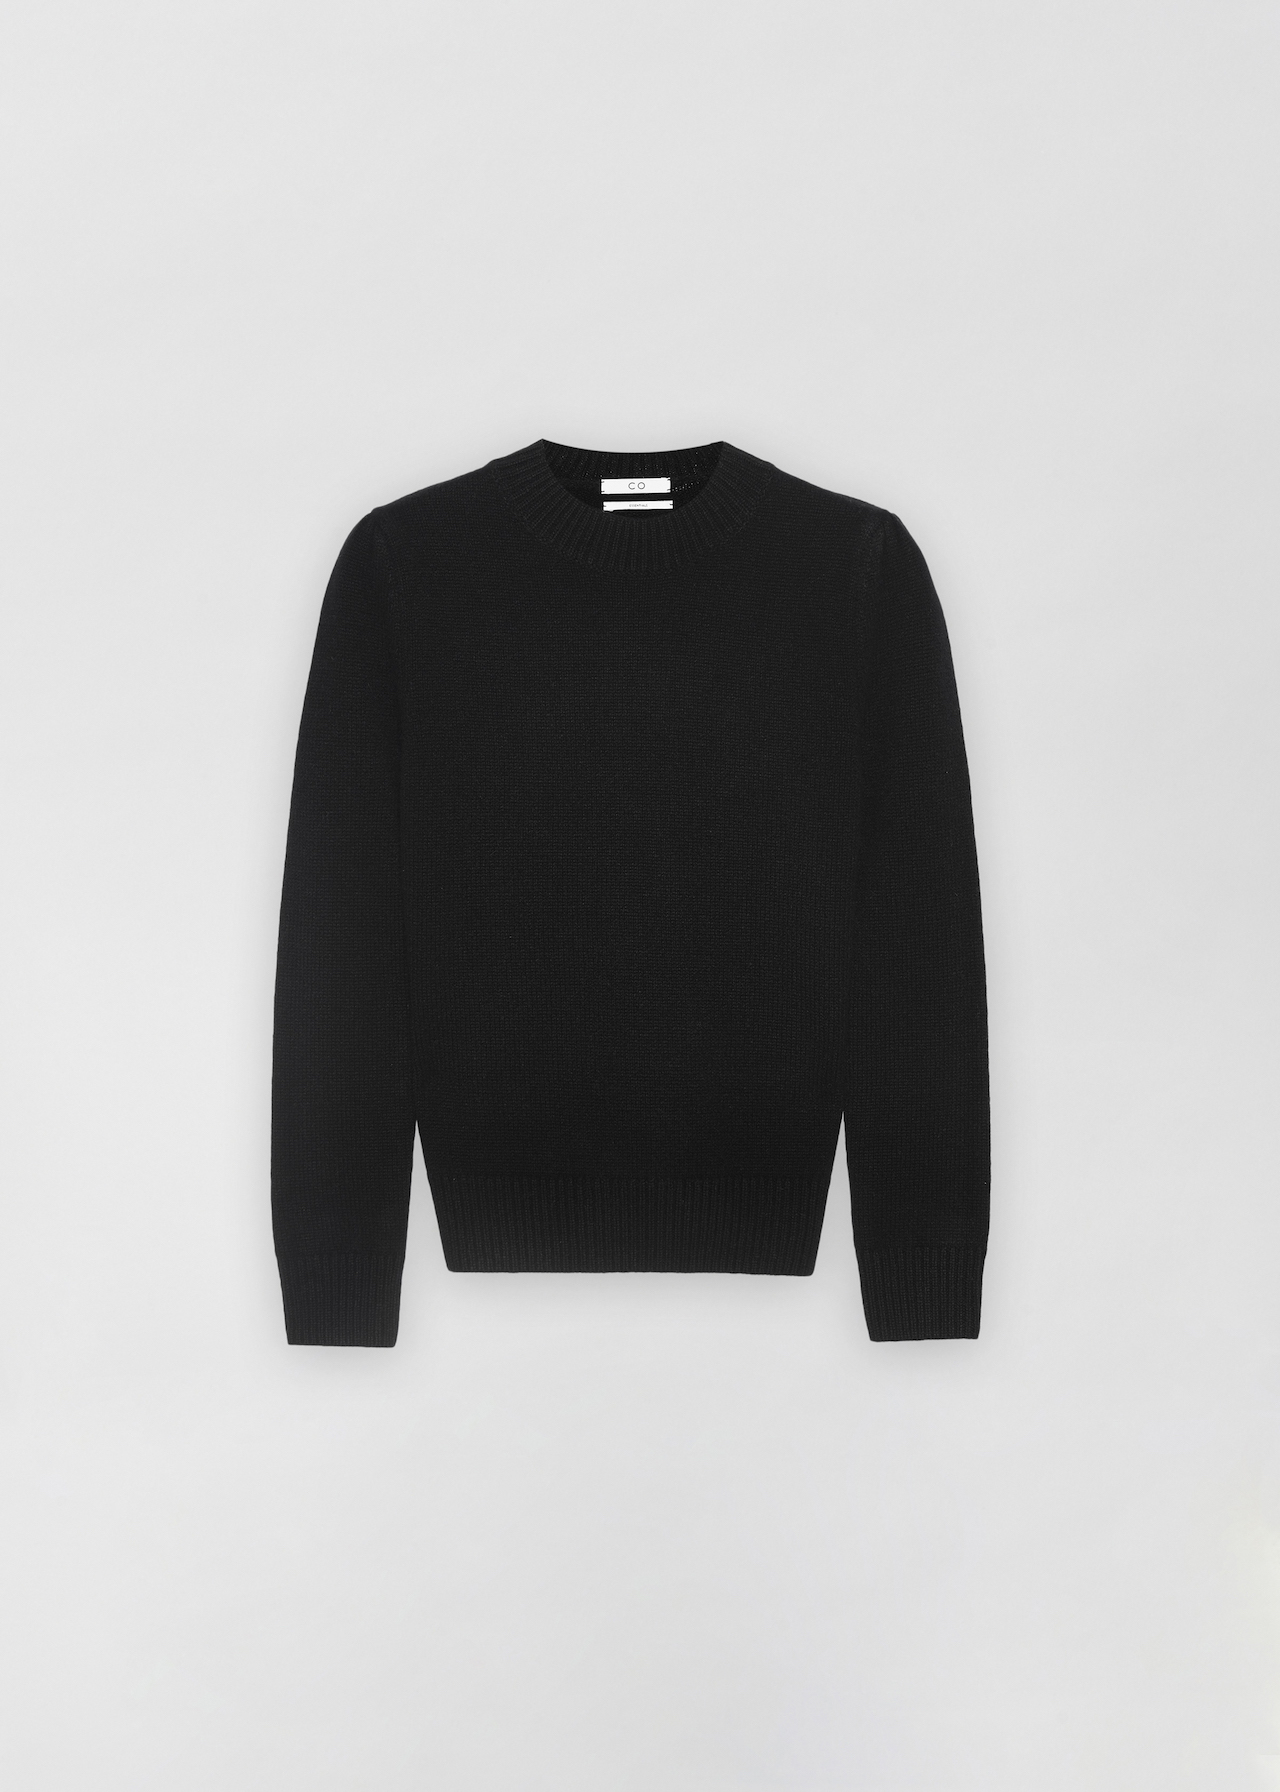 Ruched Cashmere Crew Neck Sweater - Light Grey in Black by Co Collections